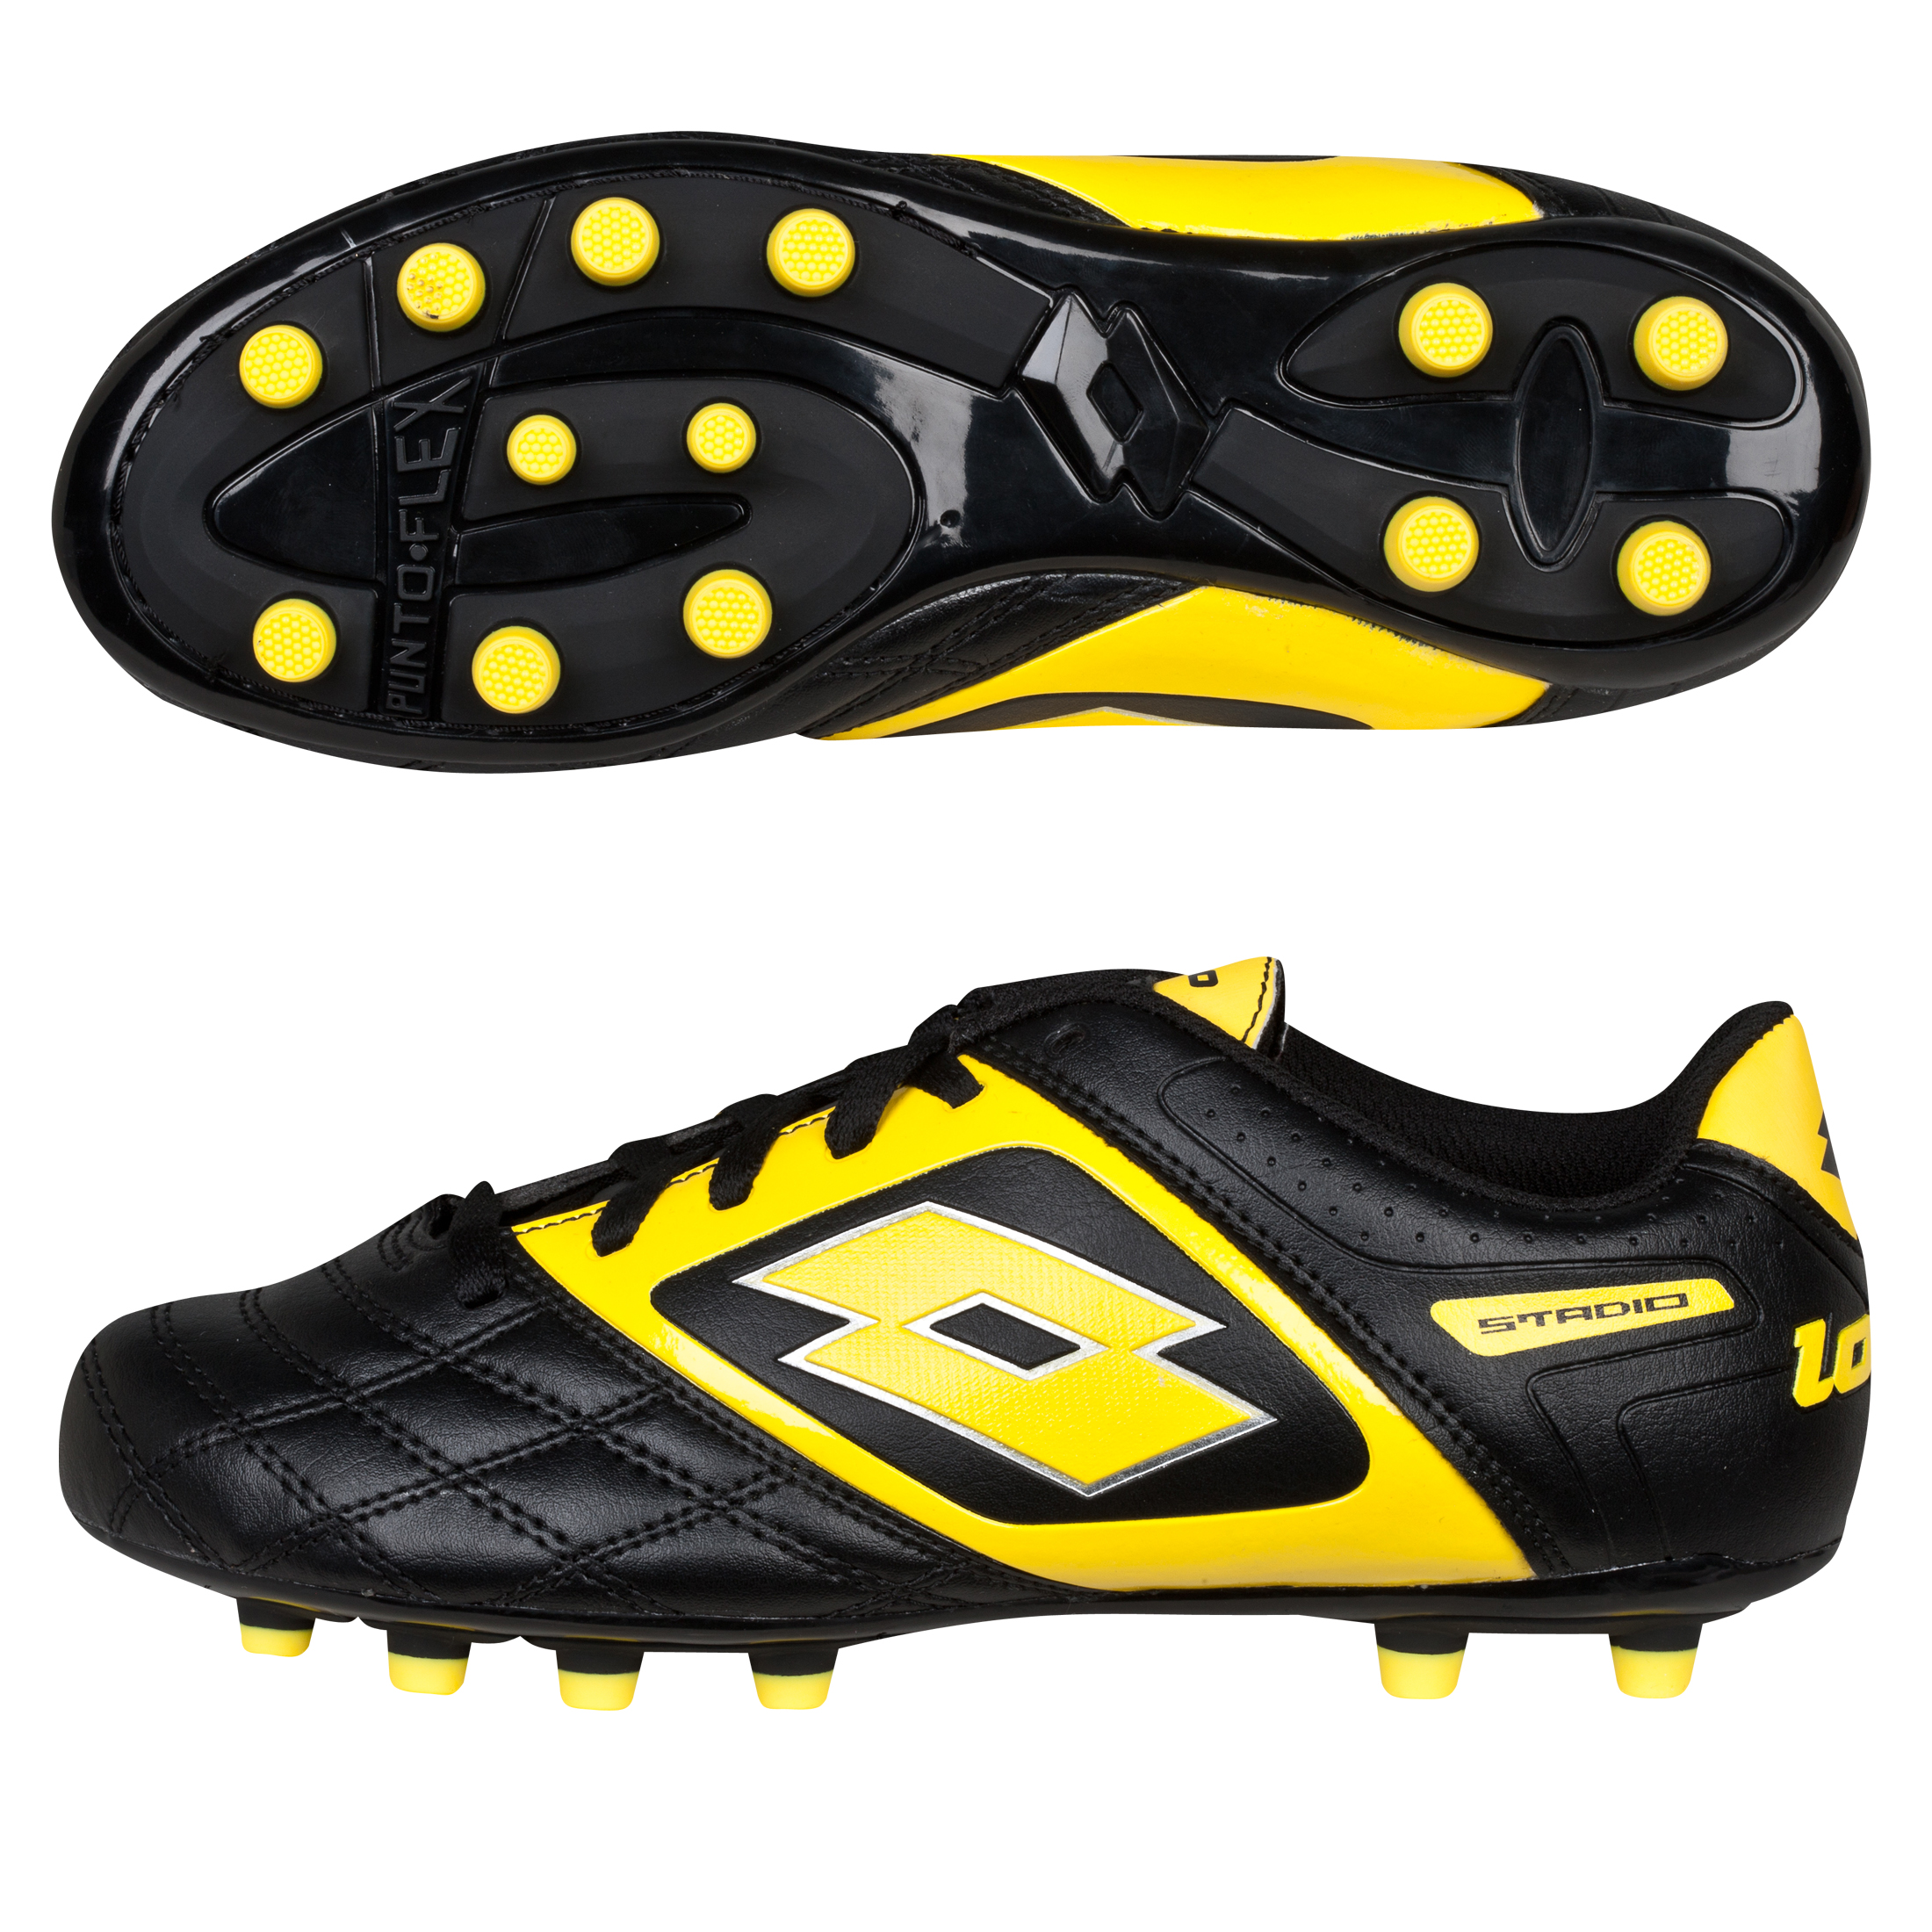 Lotto Stadio Potenza II 700 Firm Ground Football Boots - Black/Super Ylw - Kids